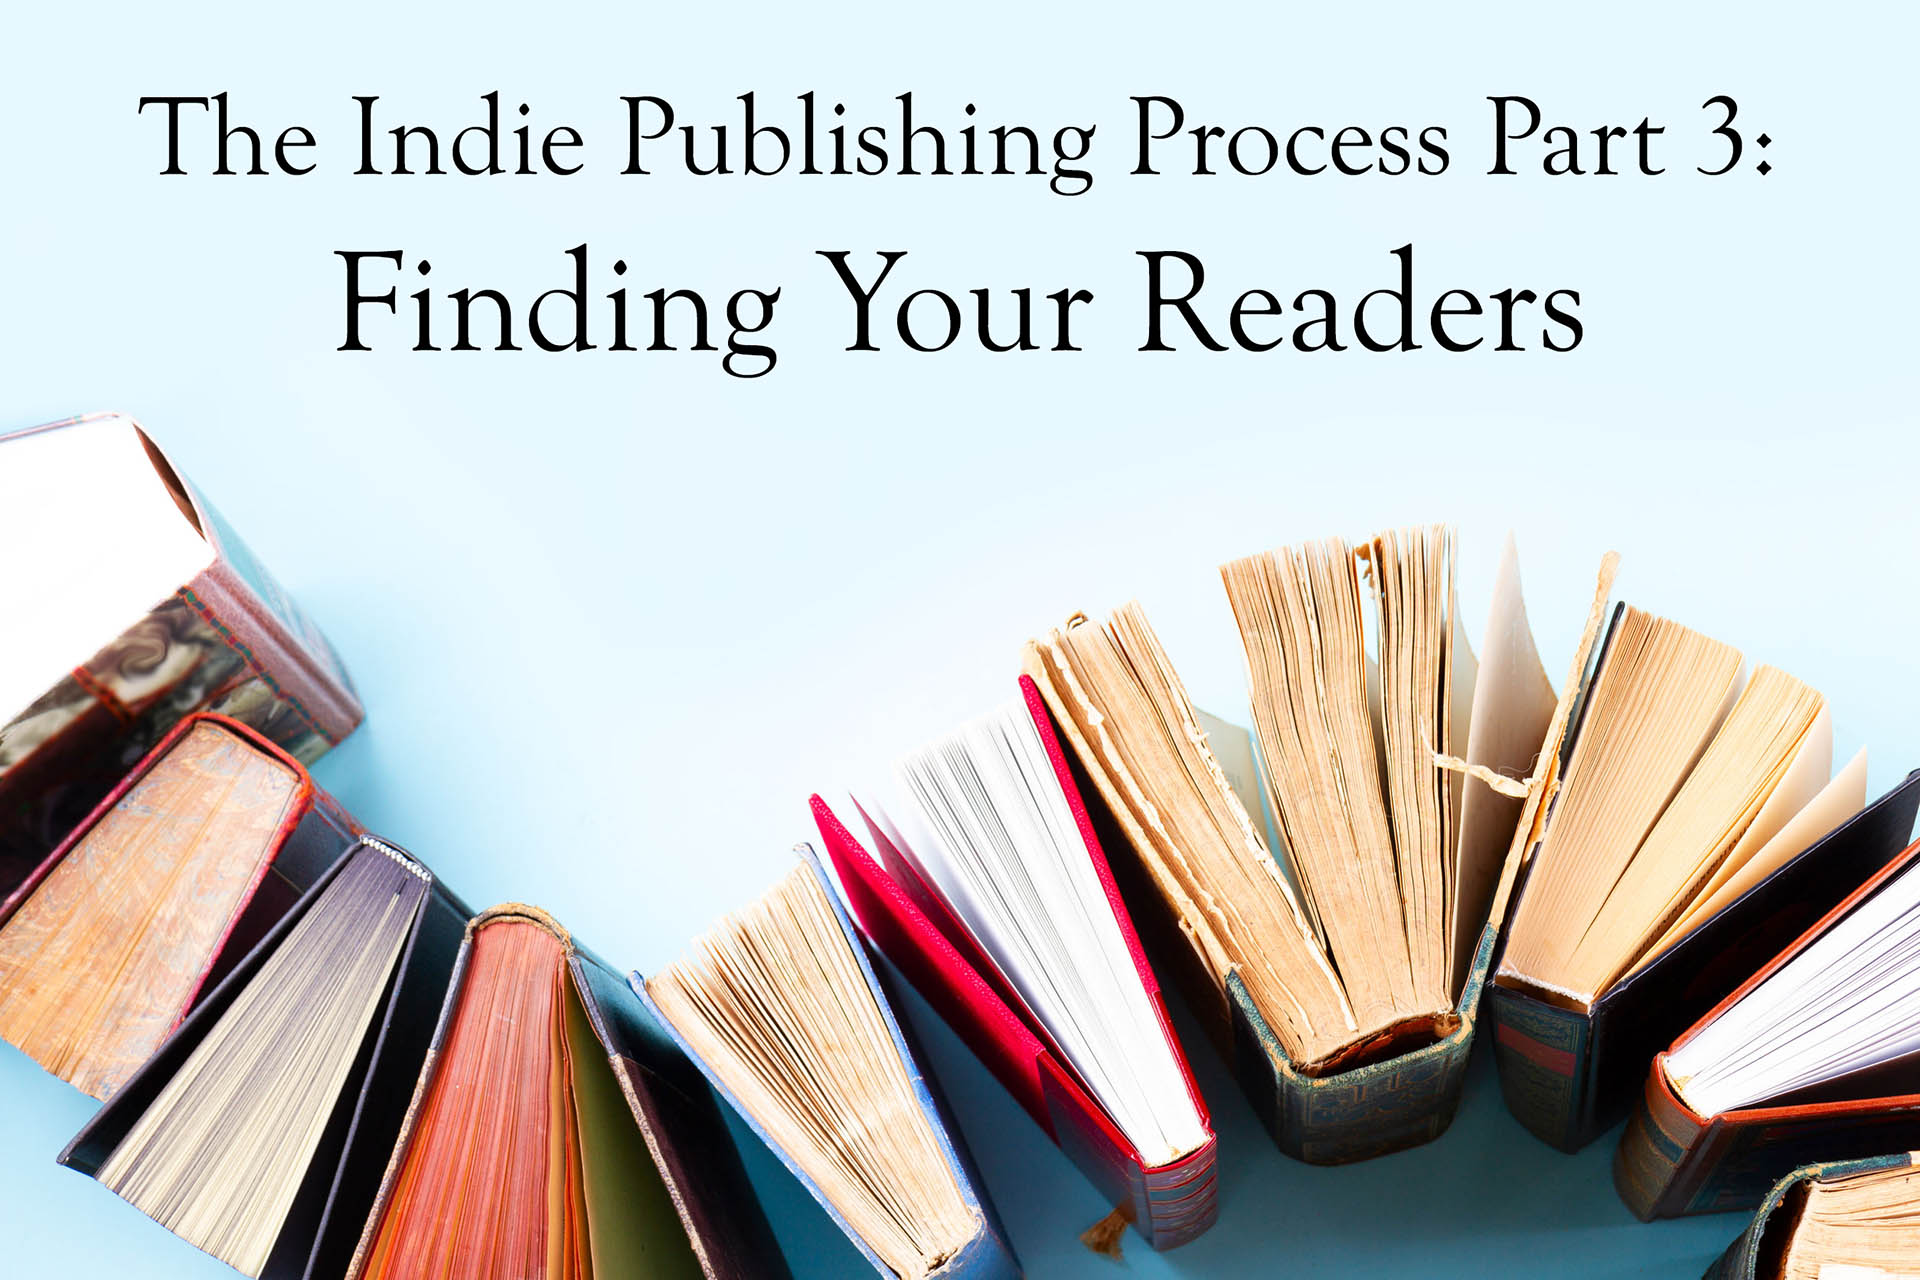 The Indie Publishing Process Part 3: Finding Your Readers (aka Marketing)